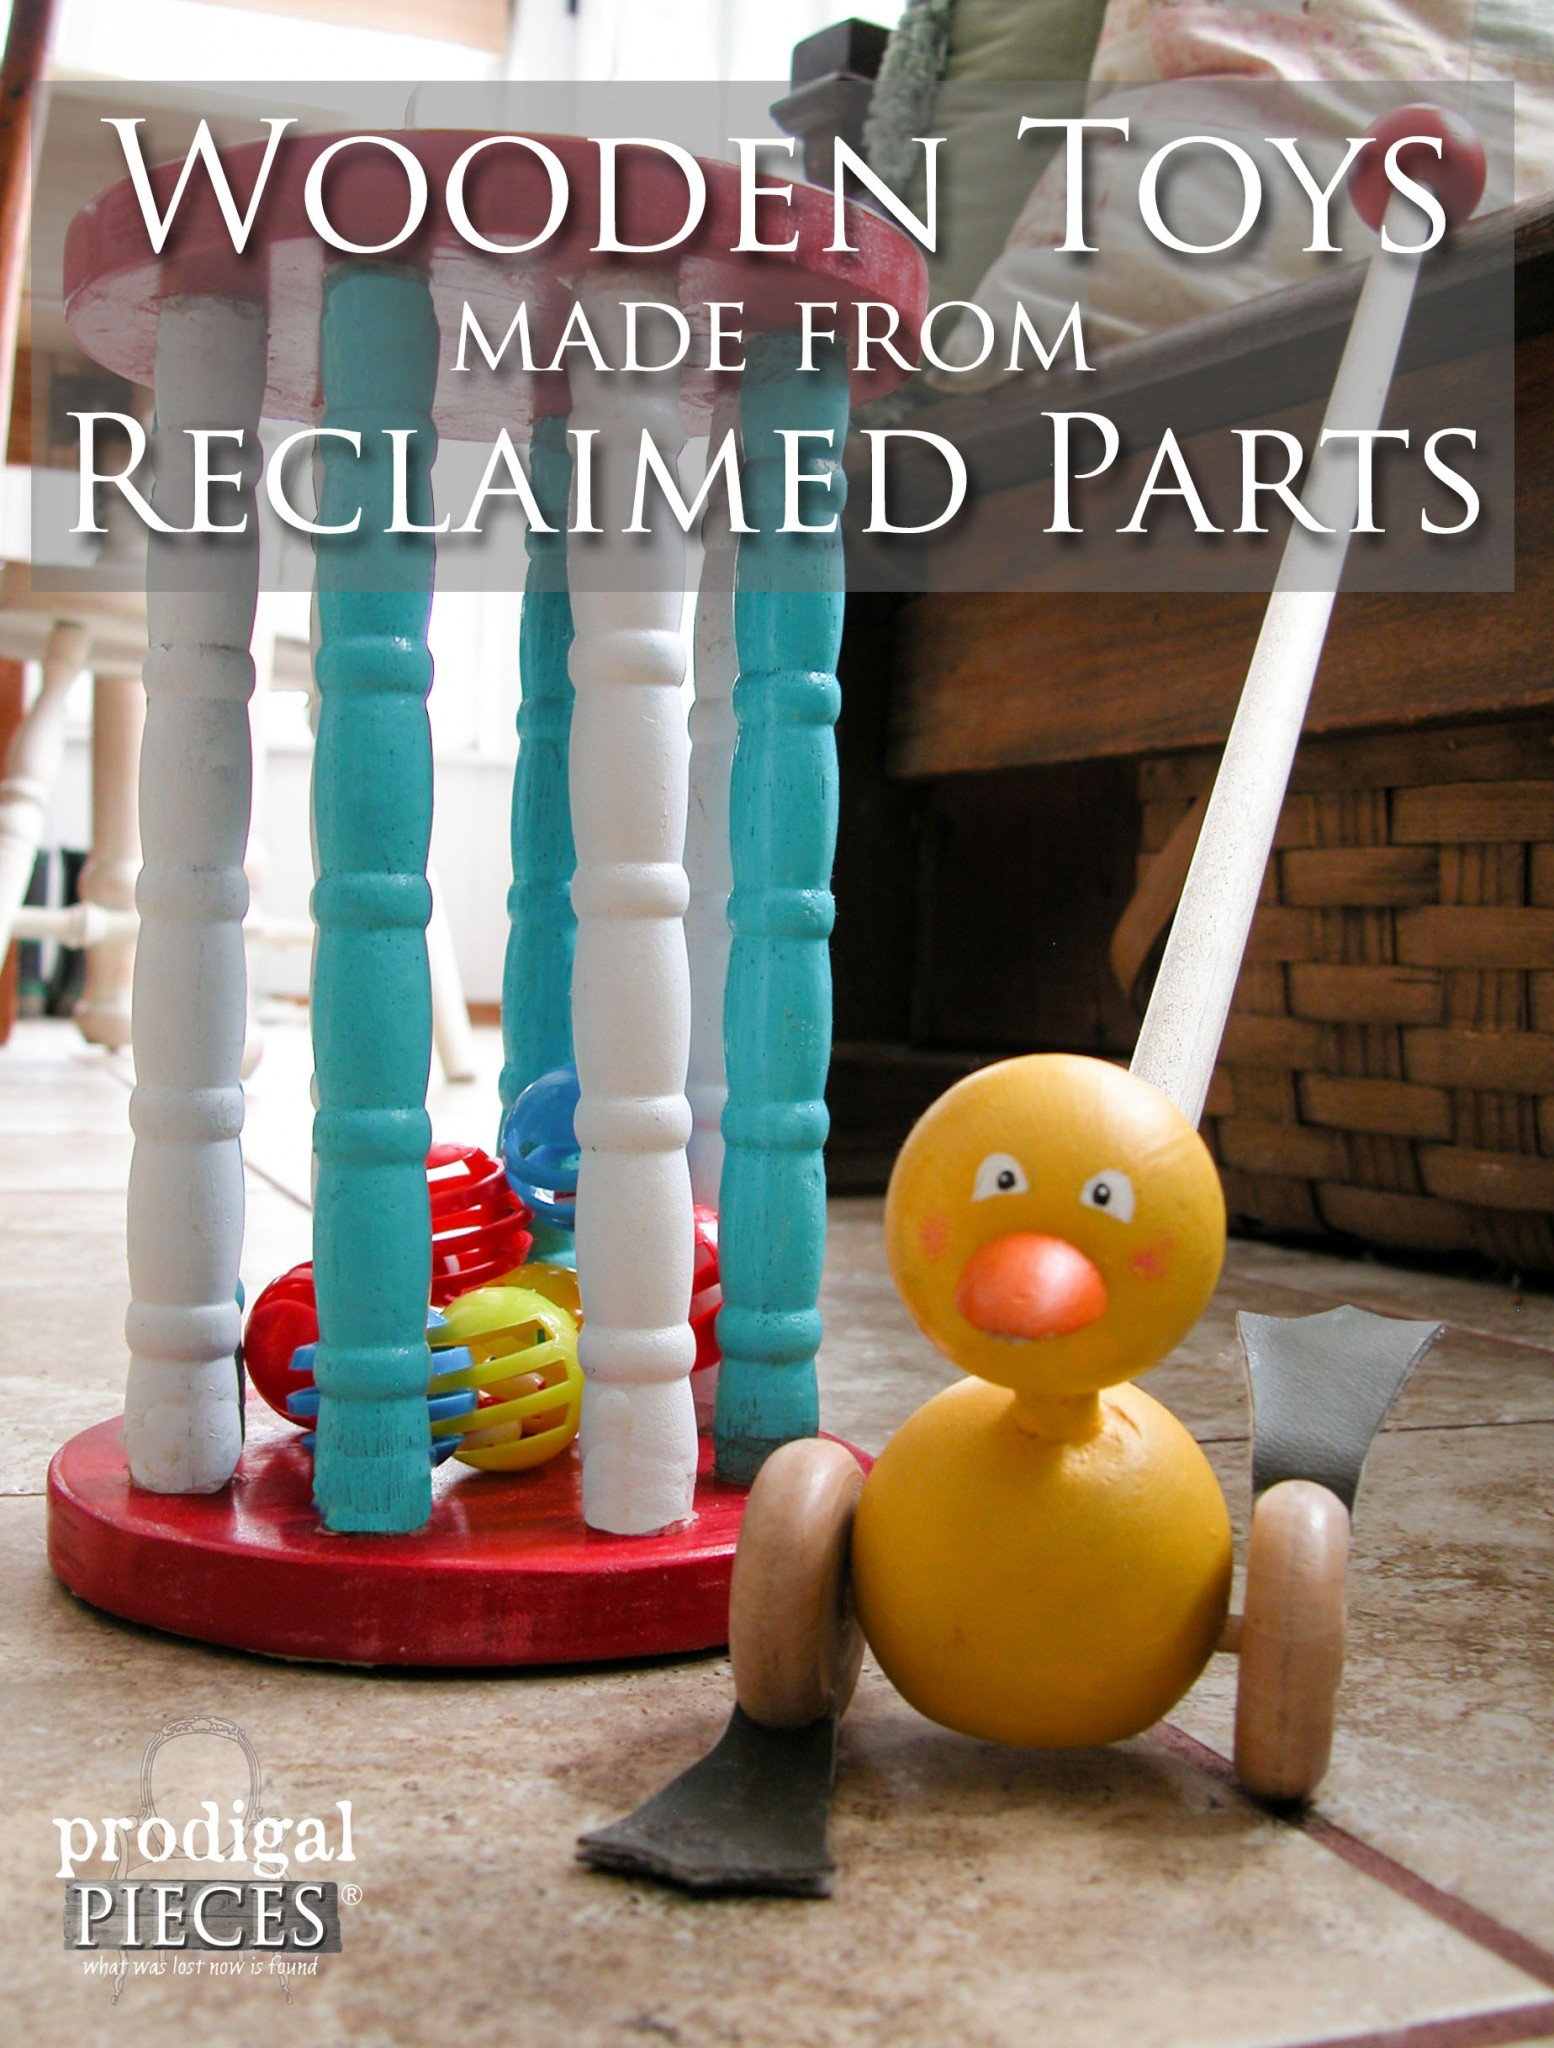 Classic Wooden Toys Made from Reclaimed Parts by Prodigal Pieces | www.prodigalpieces.com